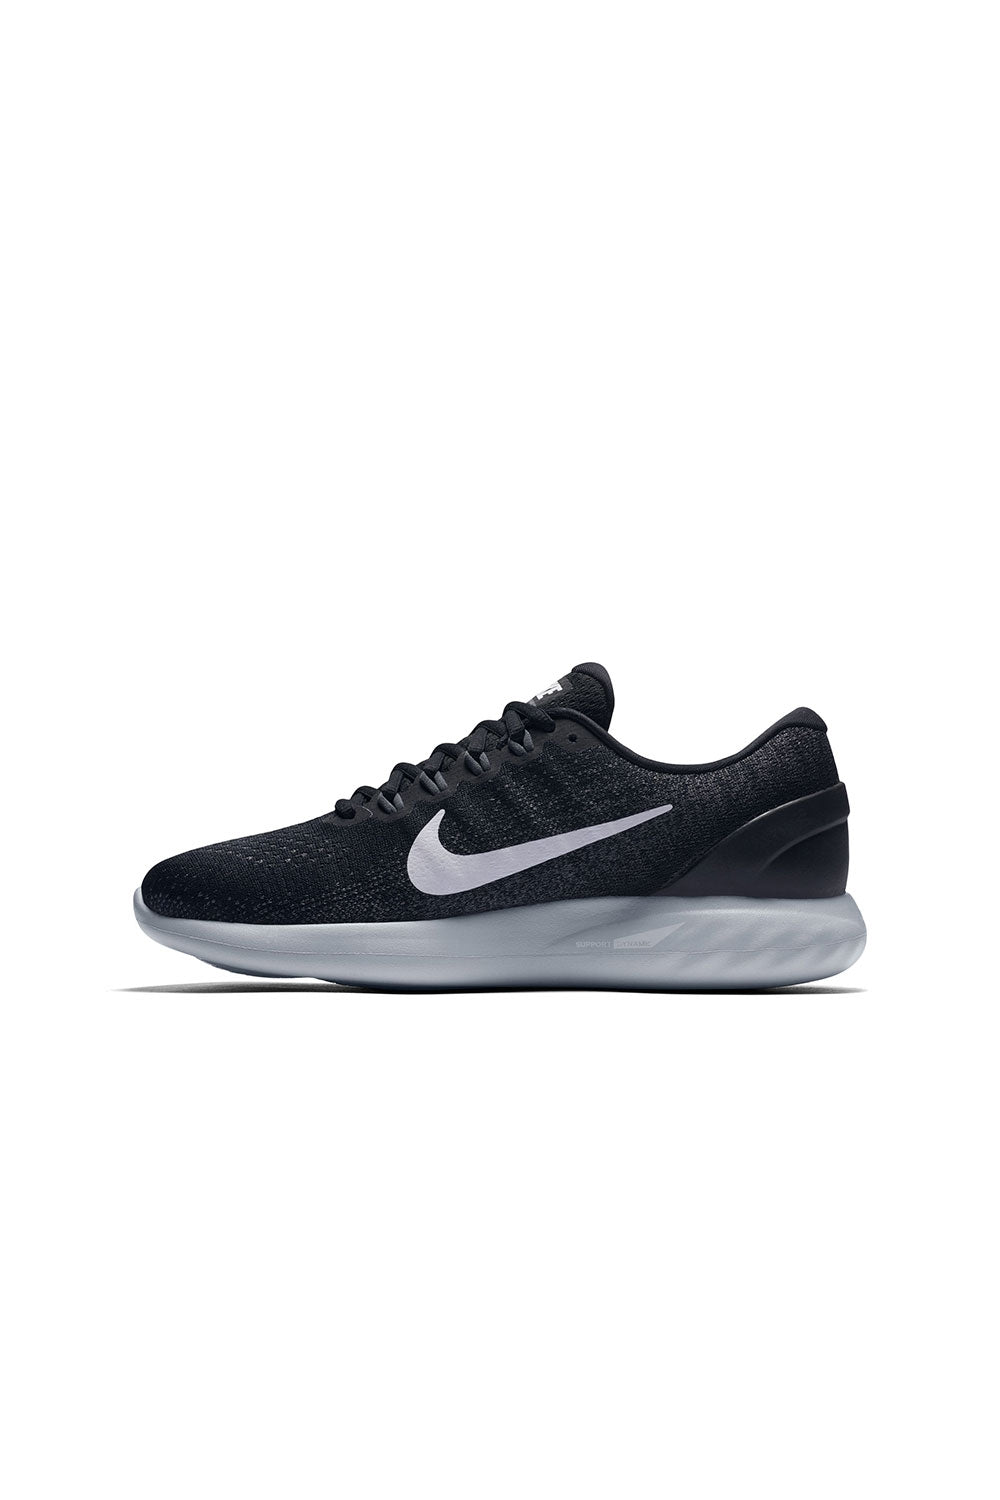 lowest price f2ab6 ef8f6 Men's LunarGlide 9 by Nike at Gazelle Sports